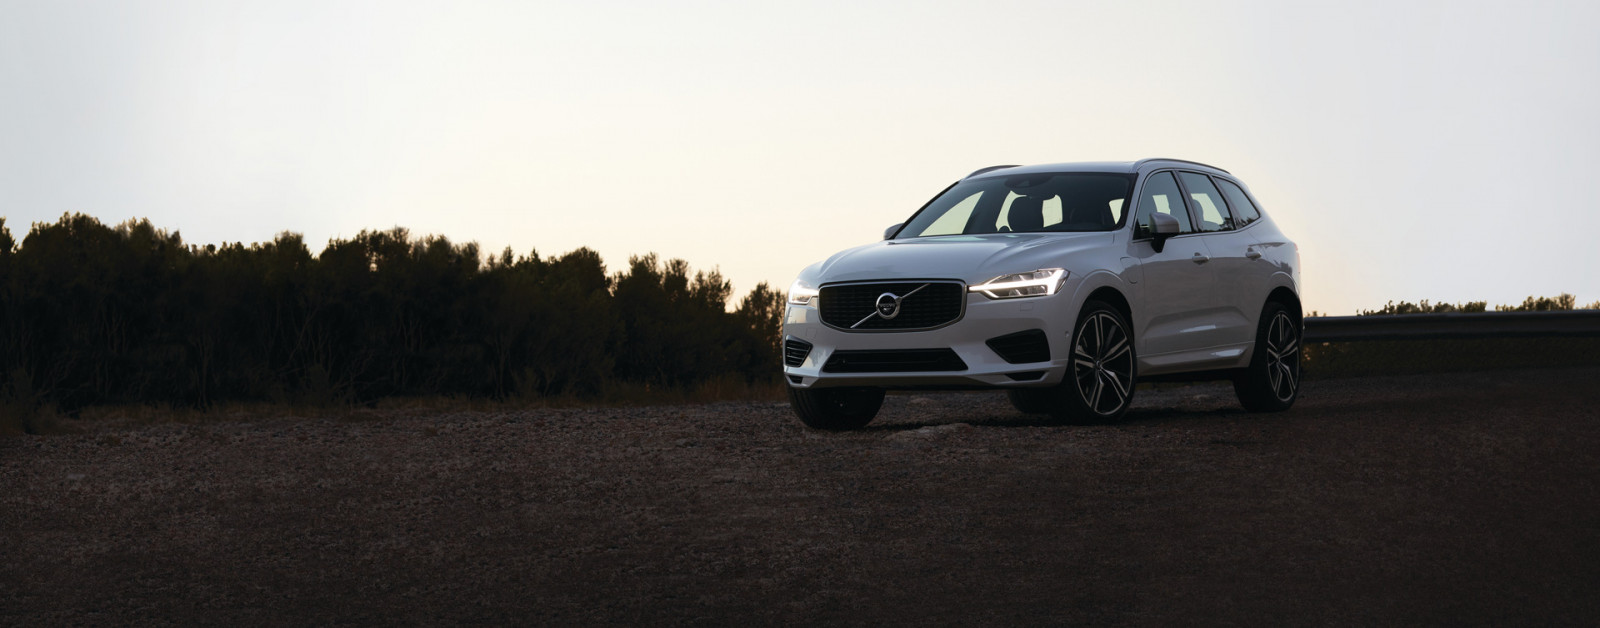 All New XC60